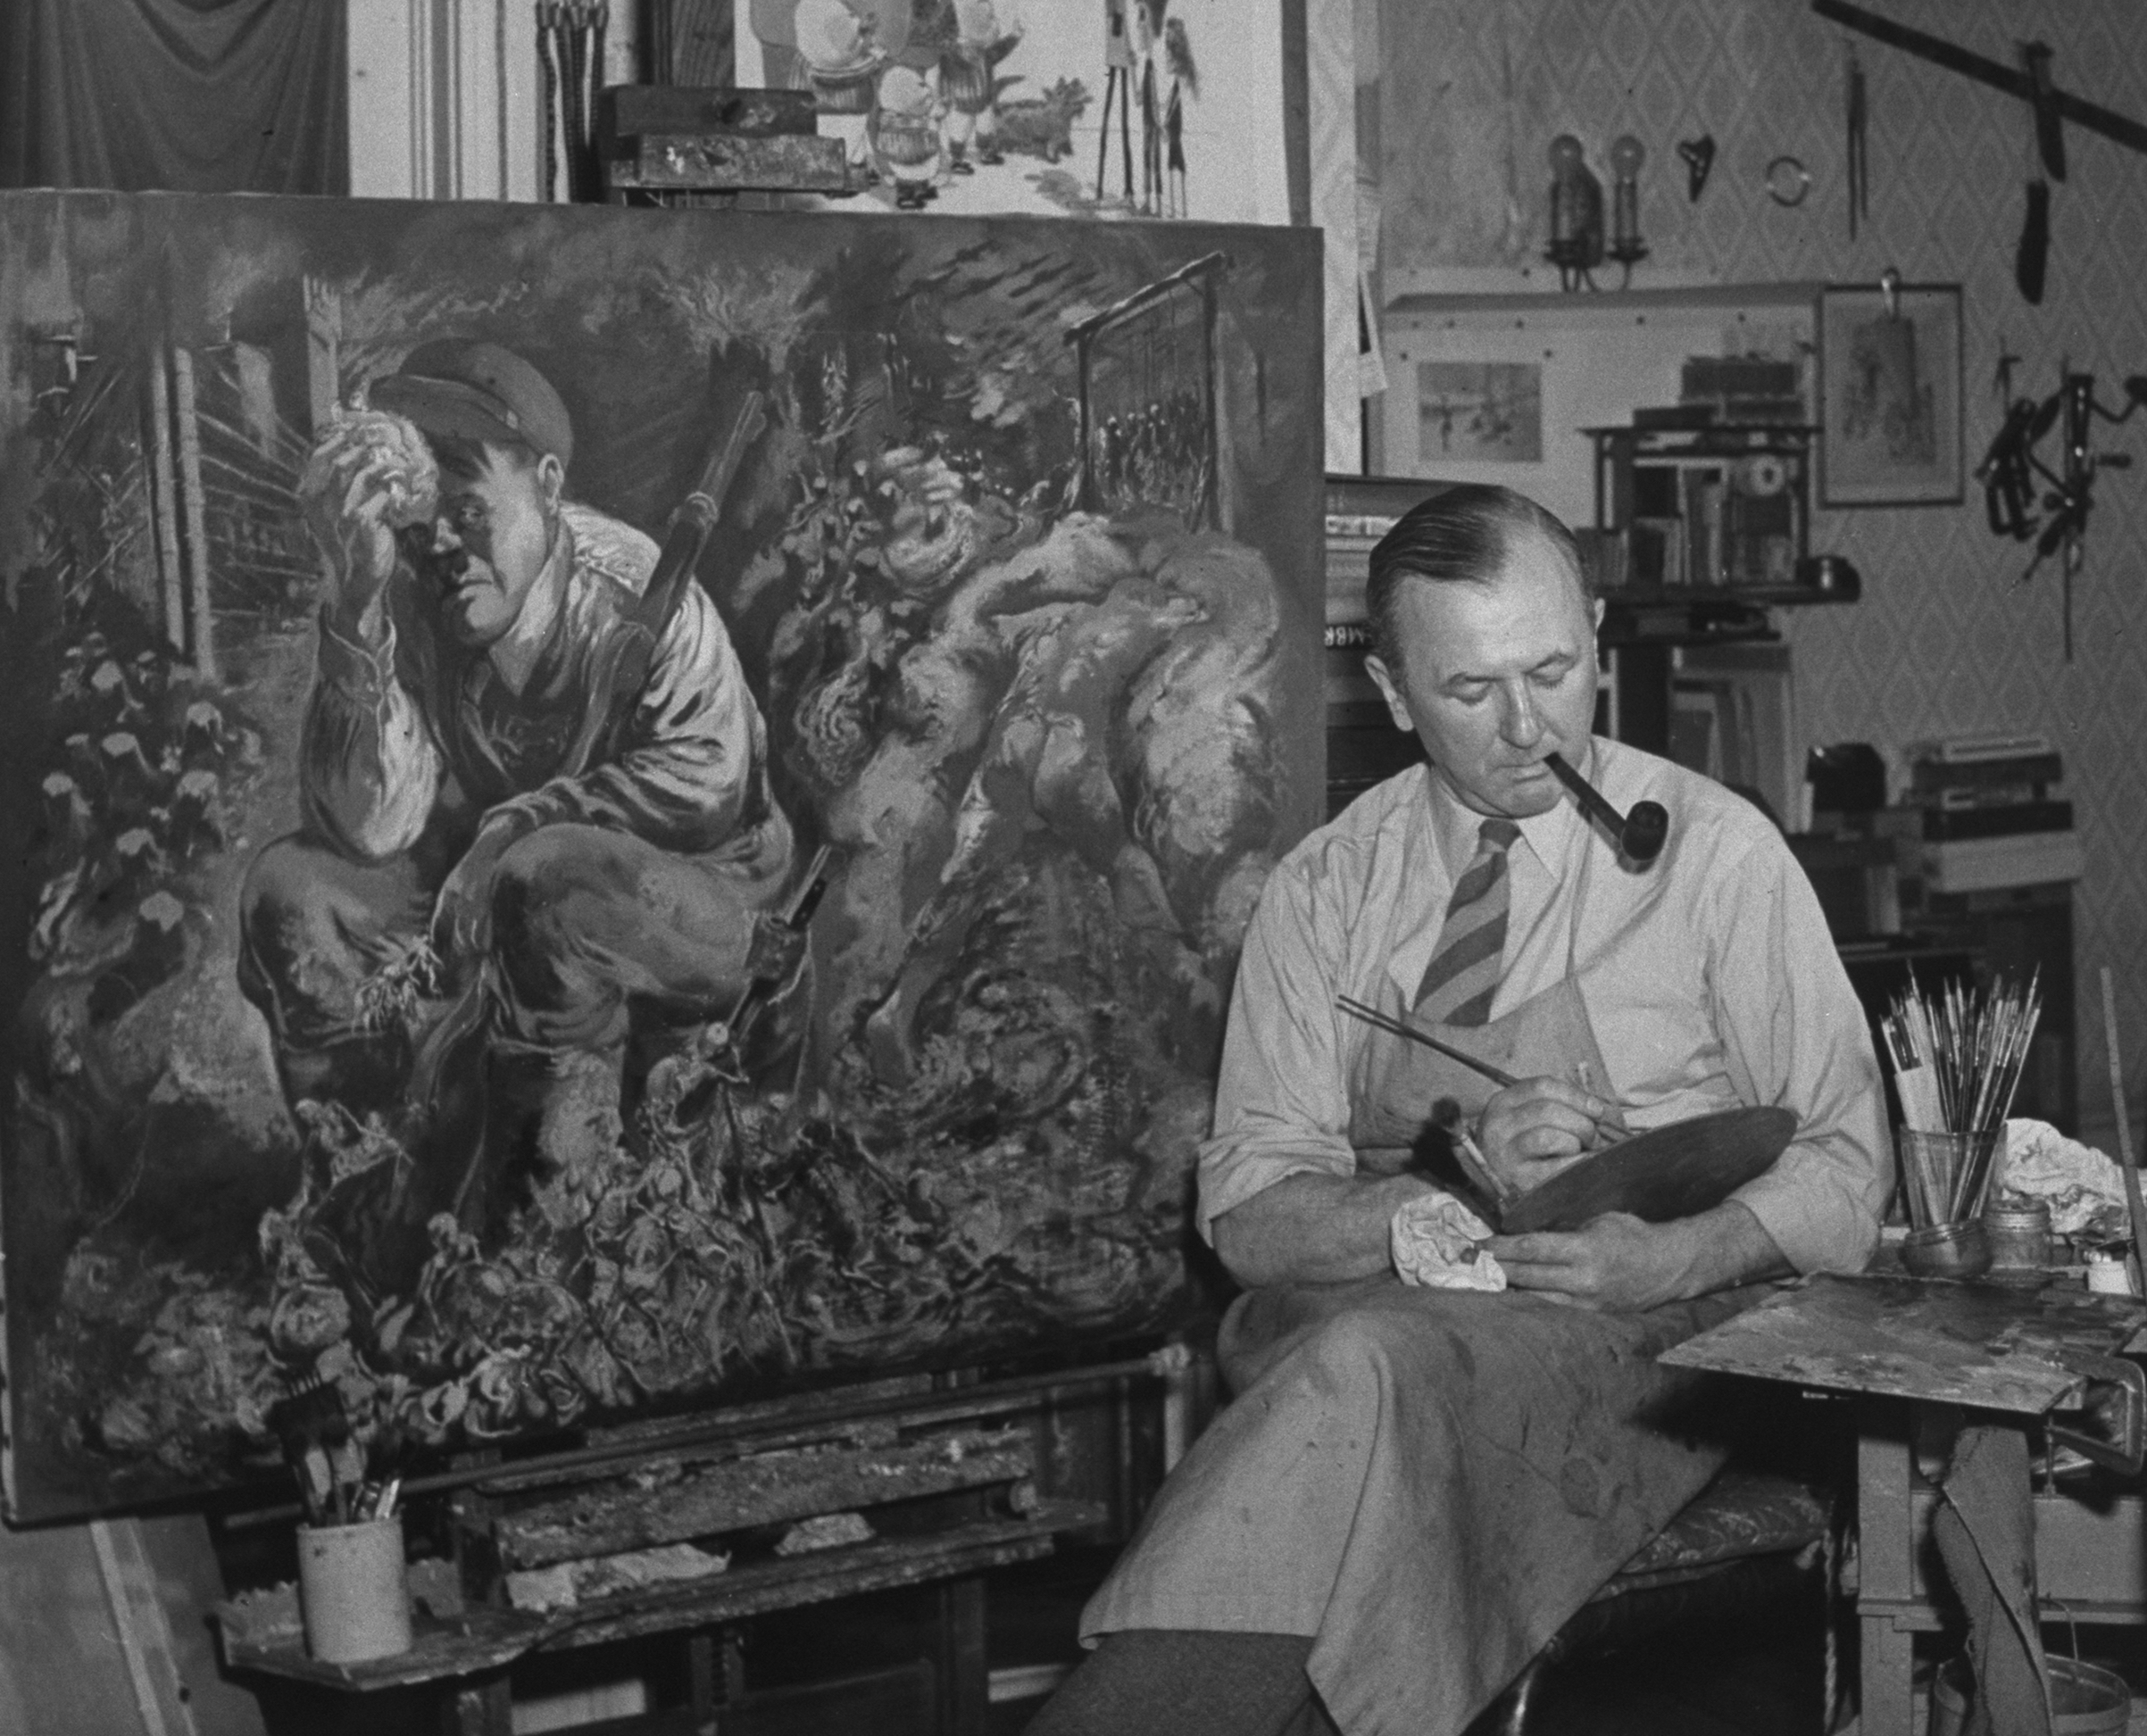 German-born painter George Grosz working on a satirical painting that depicts Adolf Hitler resting with skeletons at his feet, in studio at home